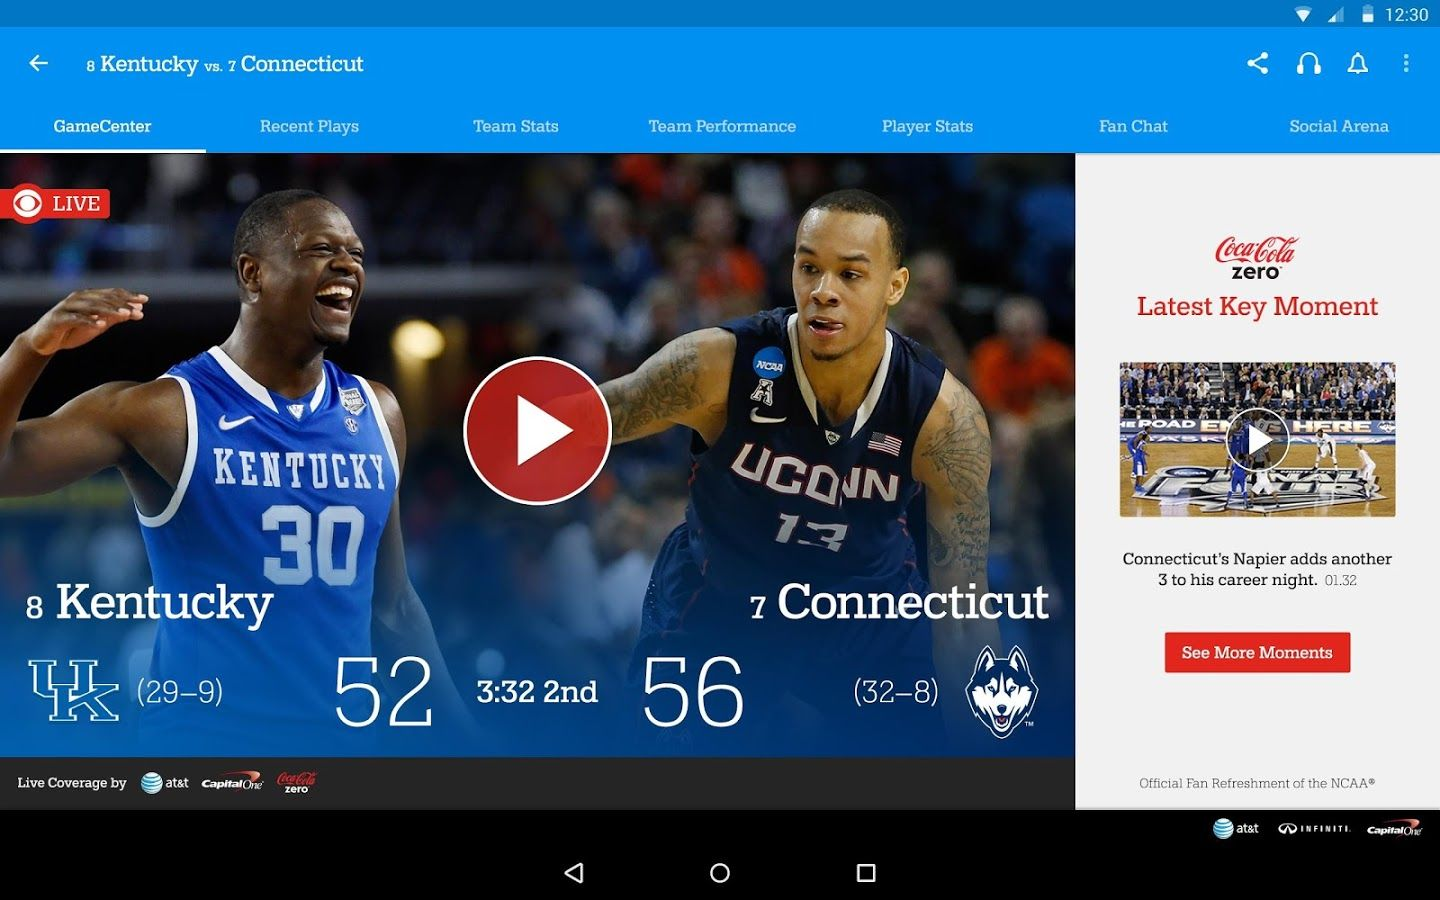 MarchMadness3